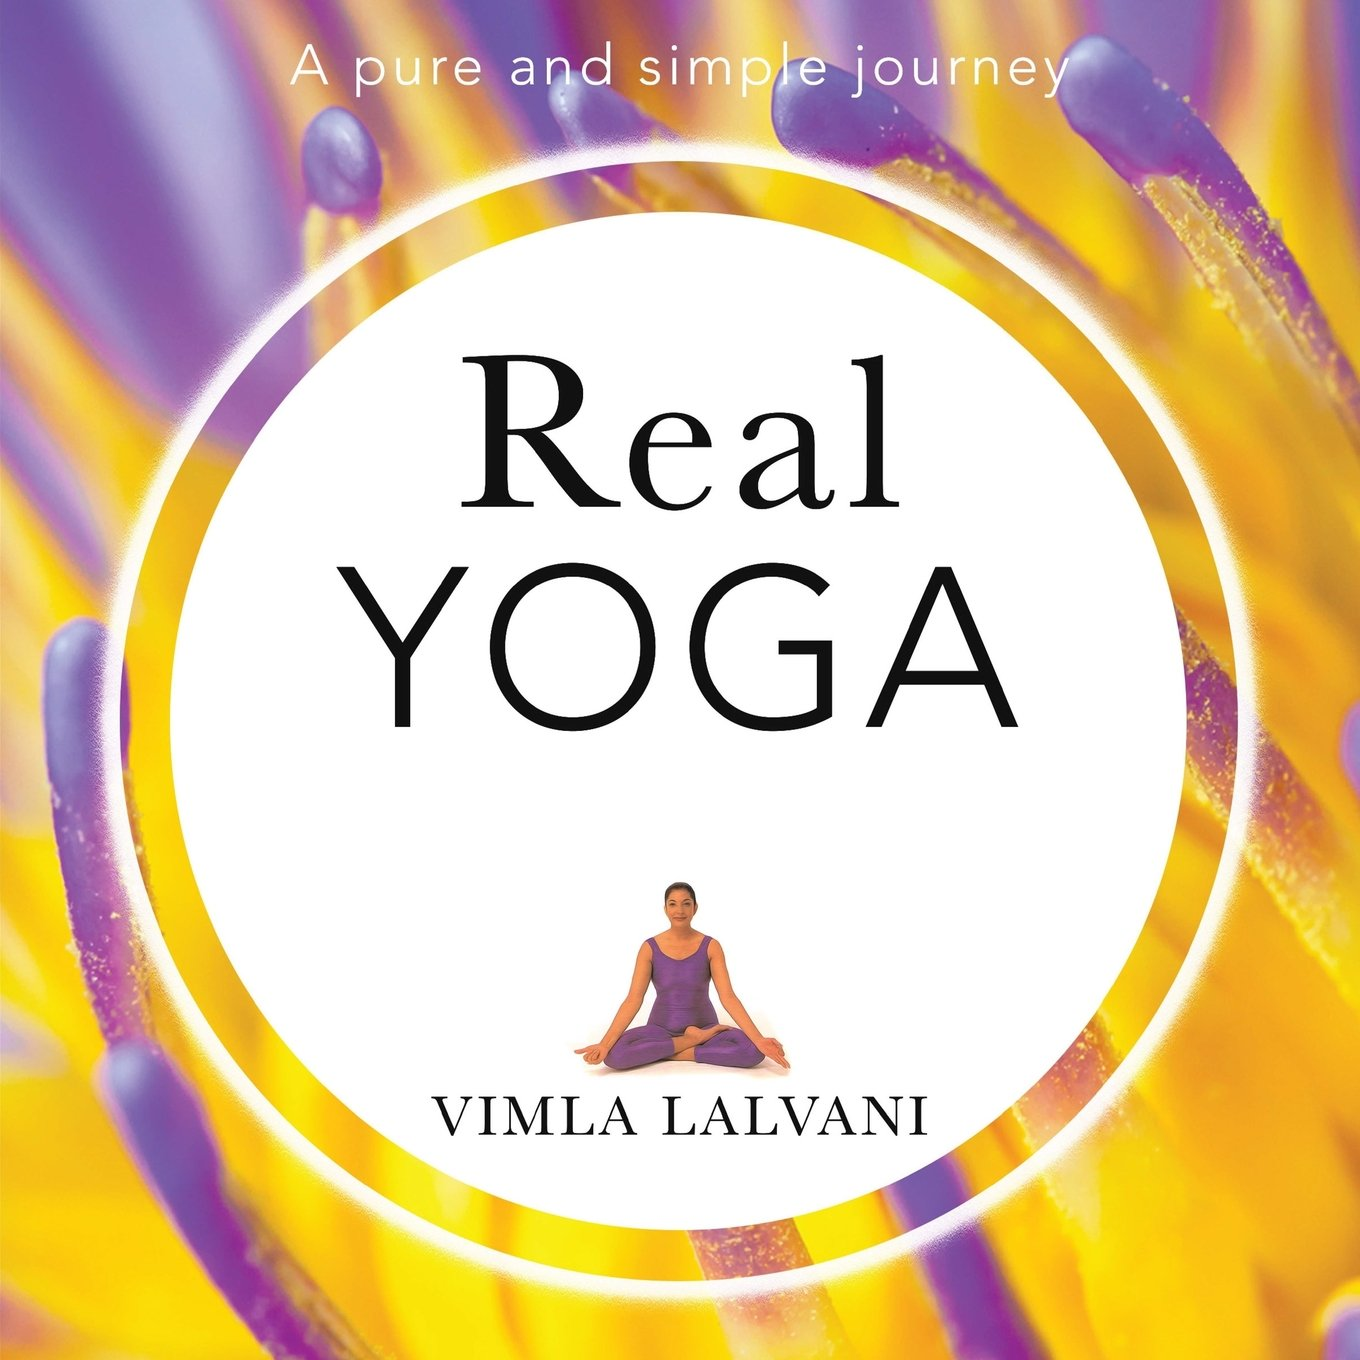 Real Yoga: a pure and simple journey: Amazon.es: Vimla ...